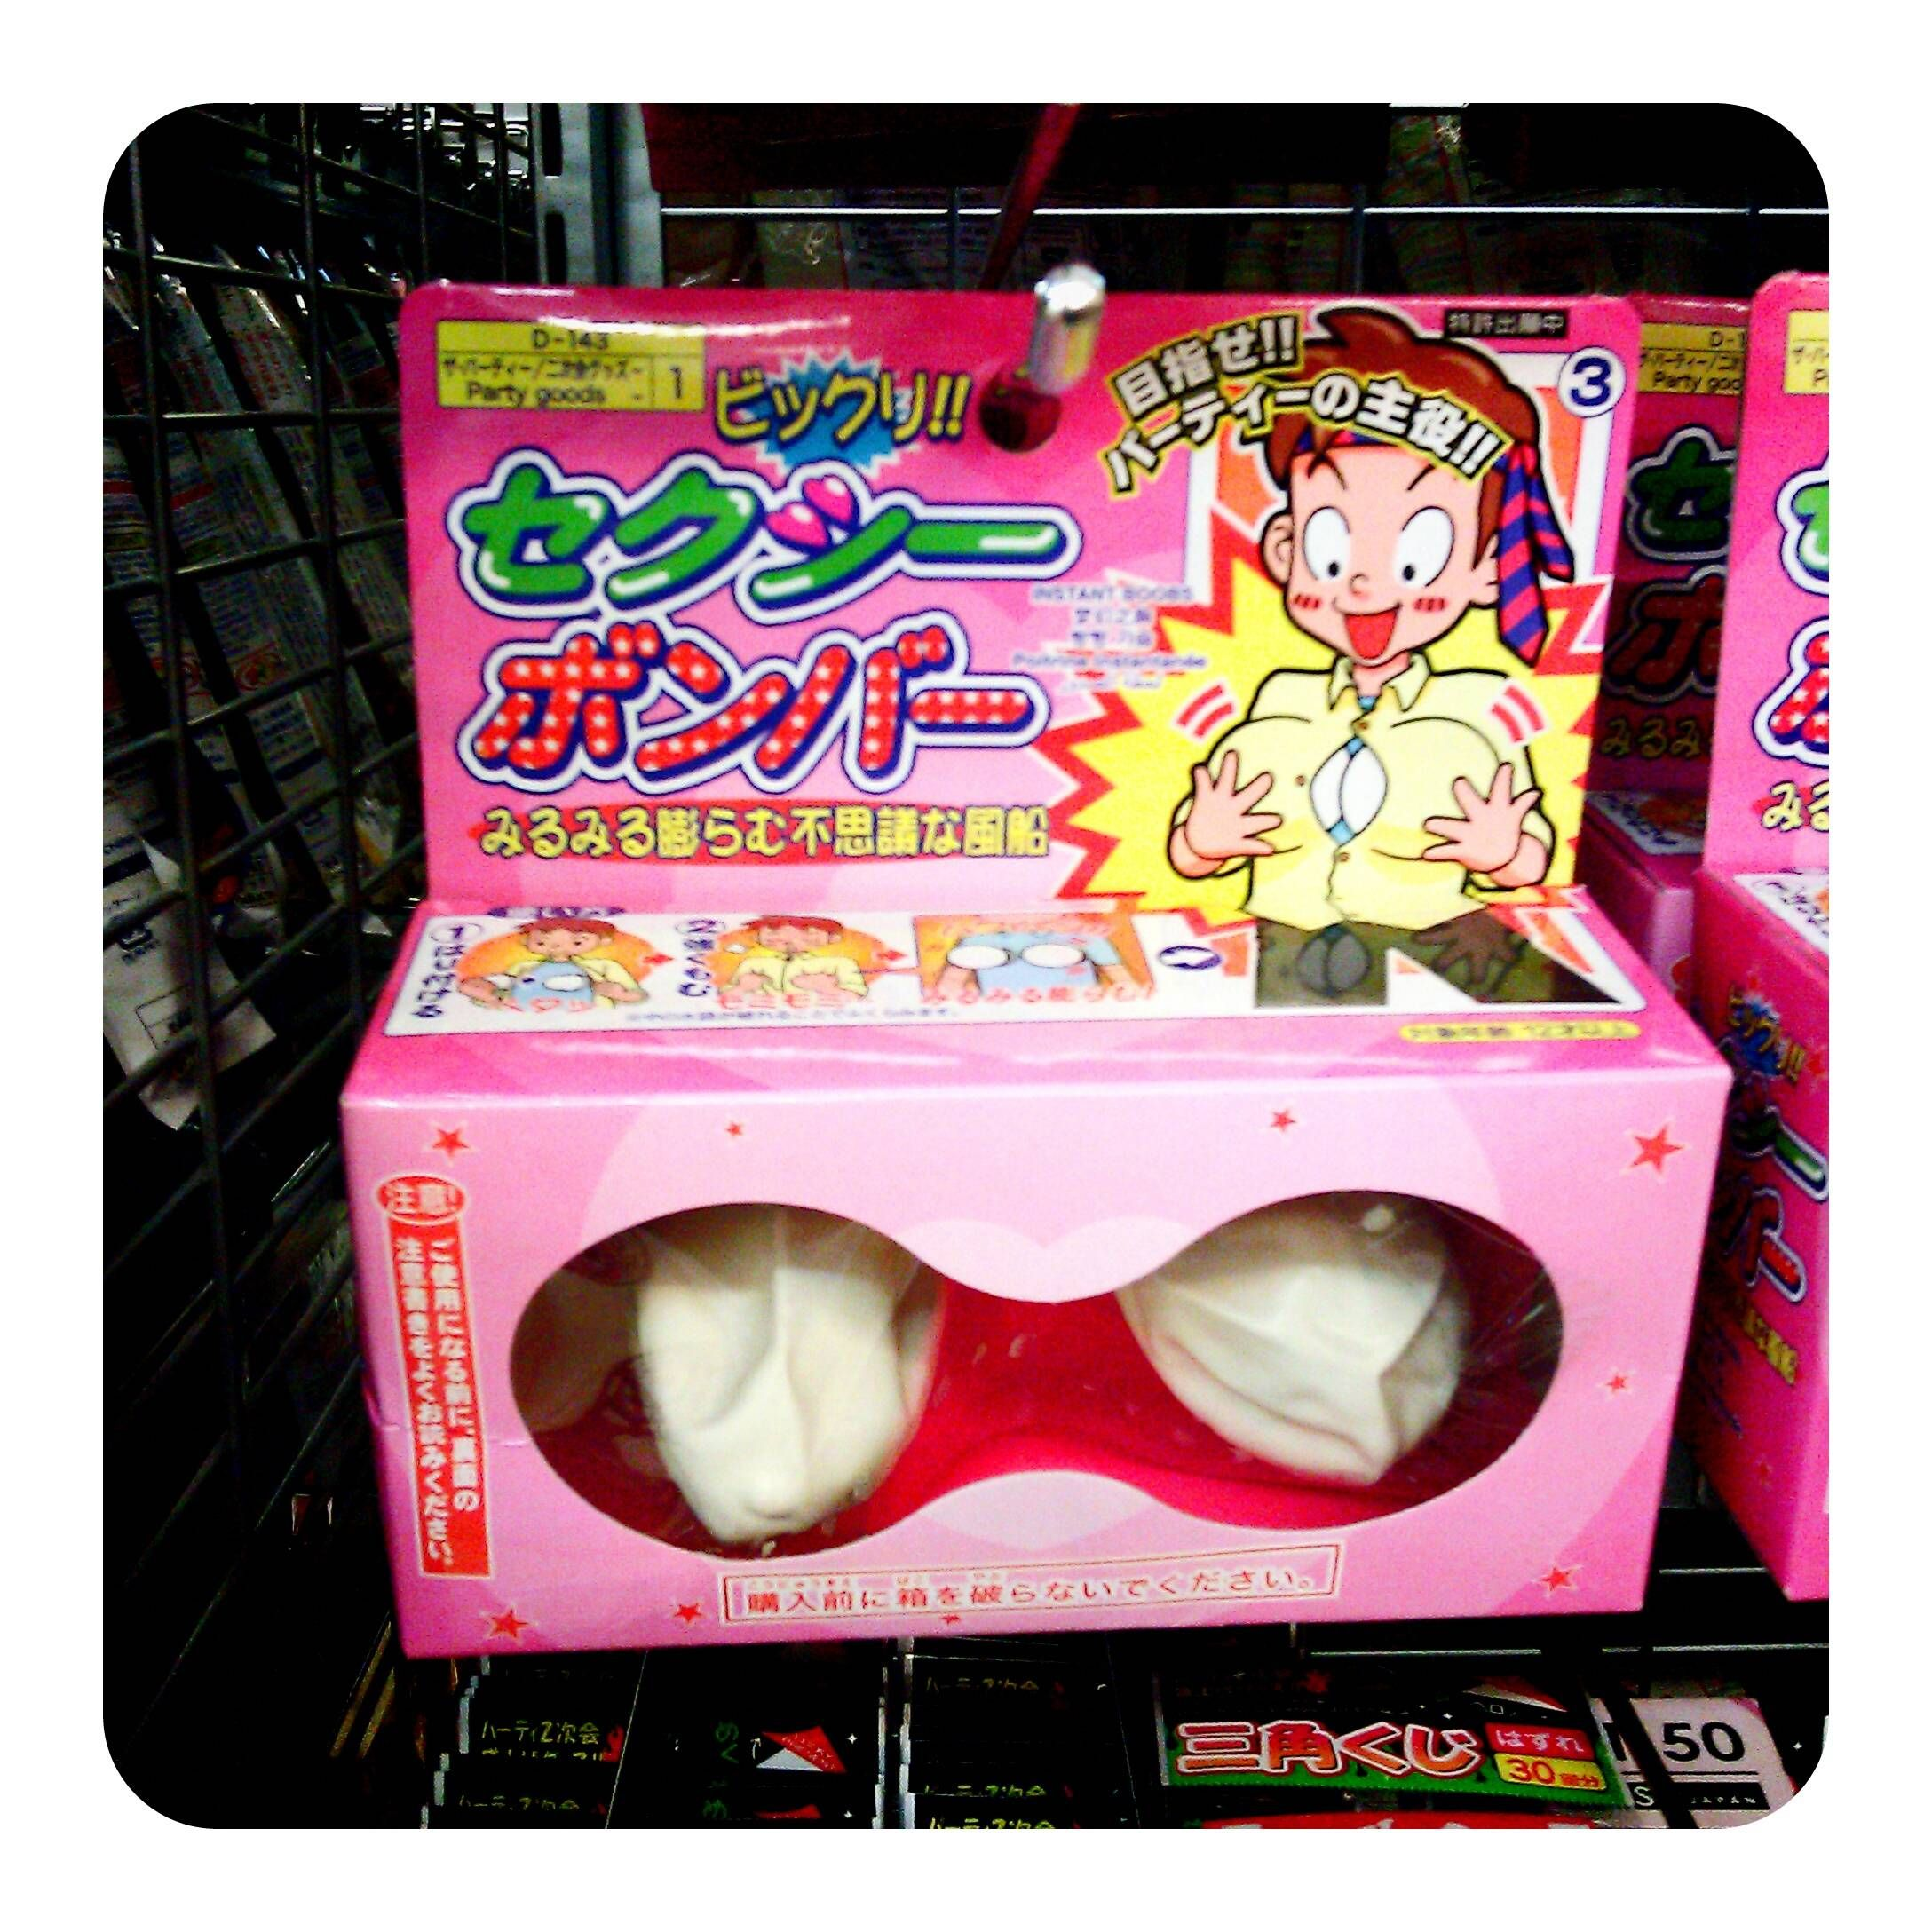 Toy I Found At Daiso Japan Daiso Japan Products Daiso Weird Gifts